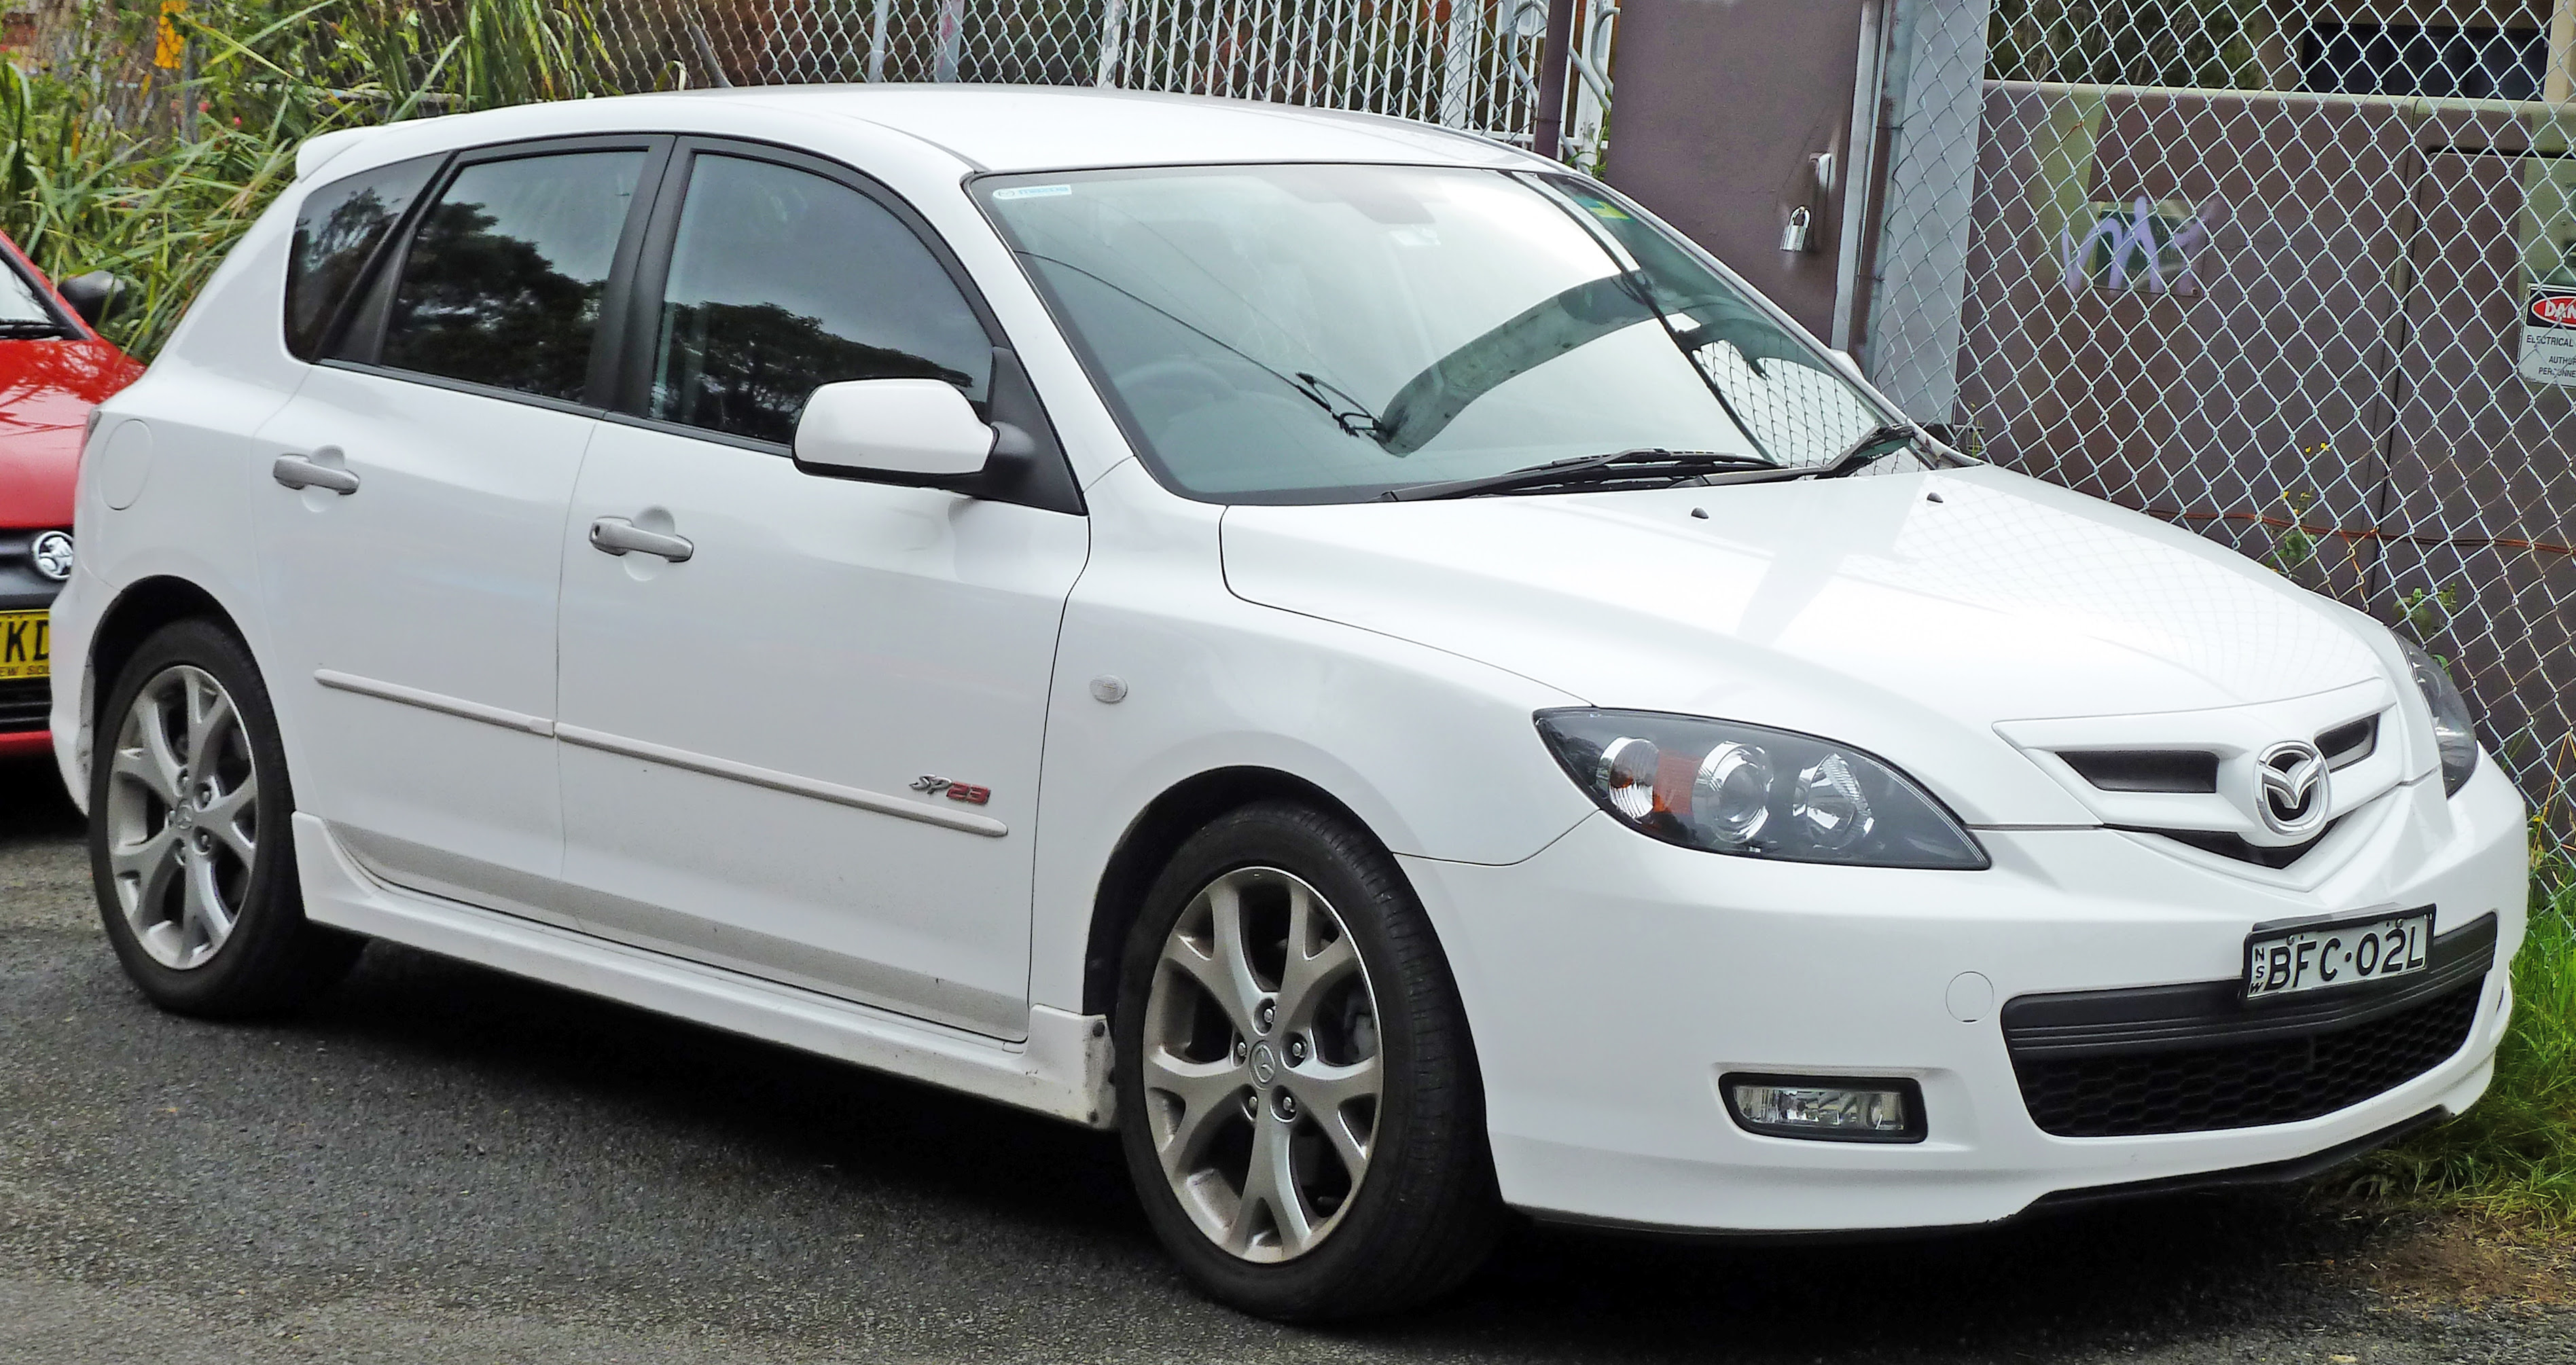 2008 Mazda MAZDASPEED MAZDA3 - Information and photos - MOMENTcar